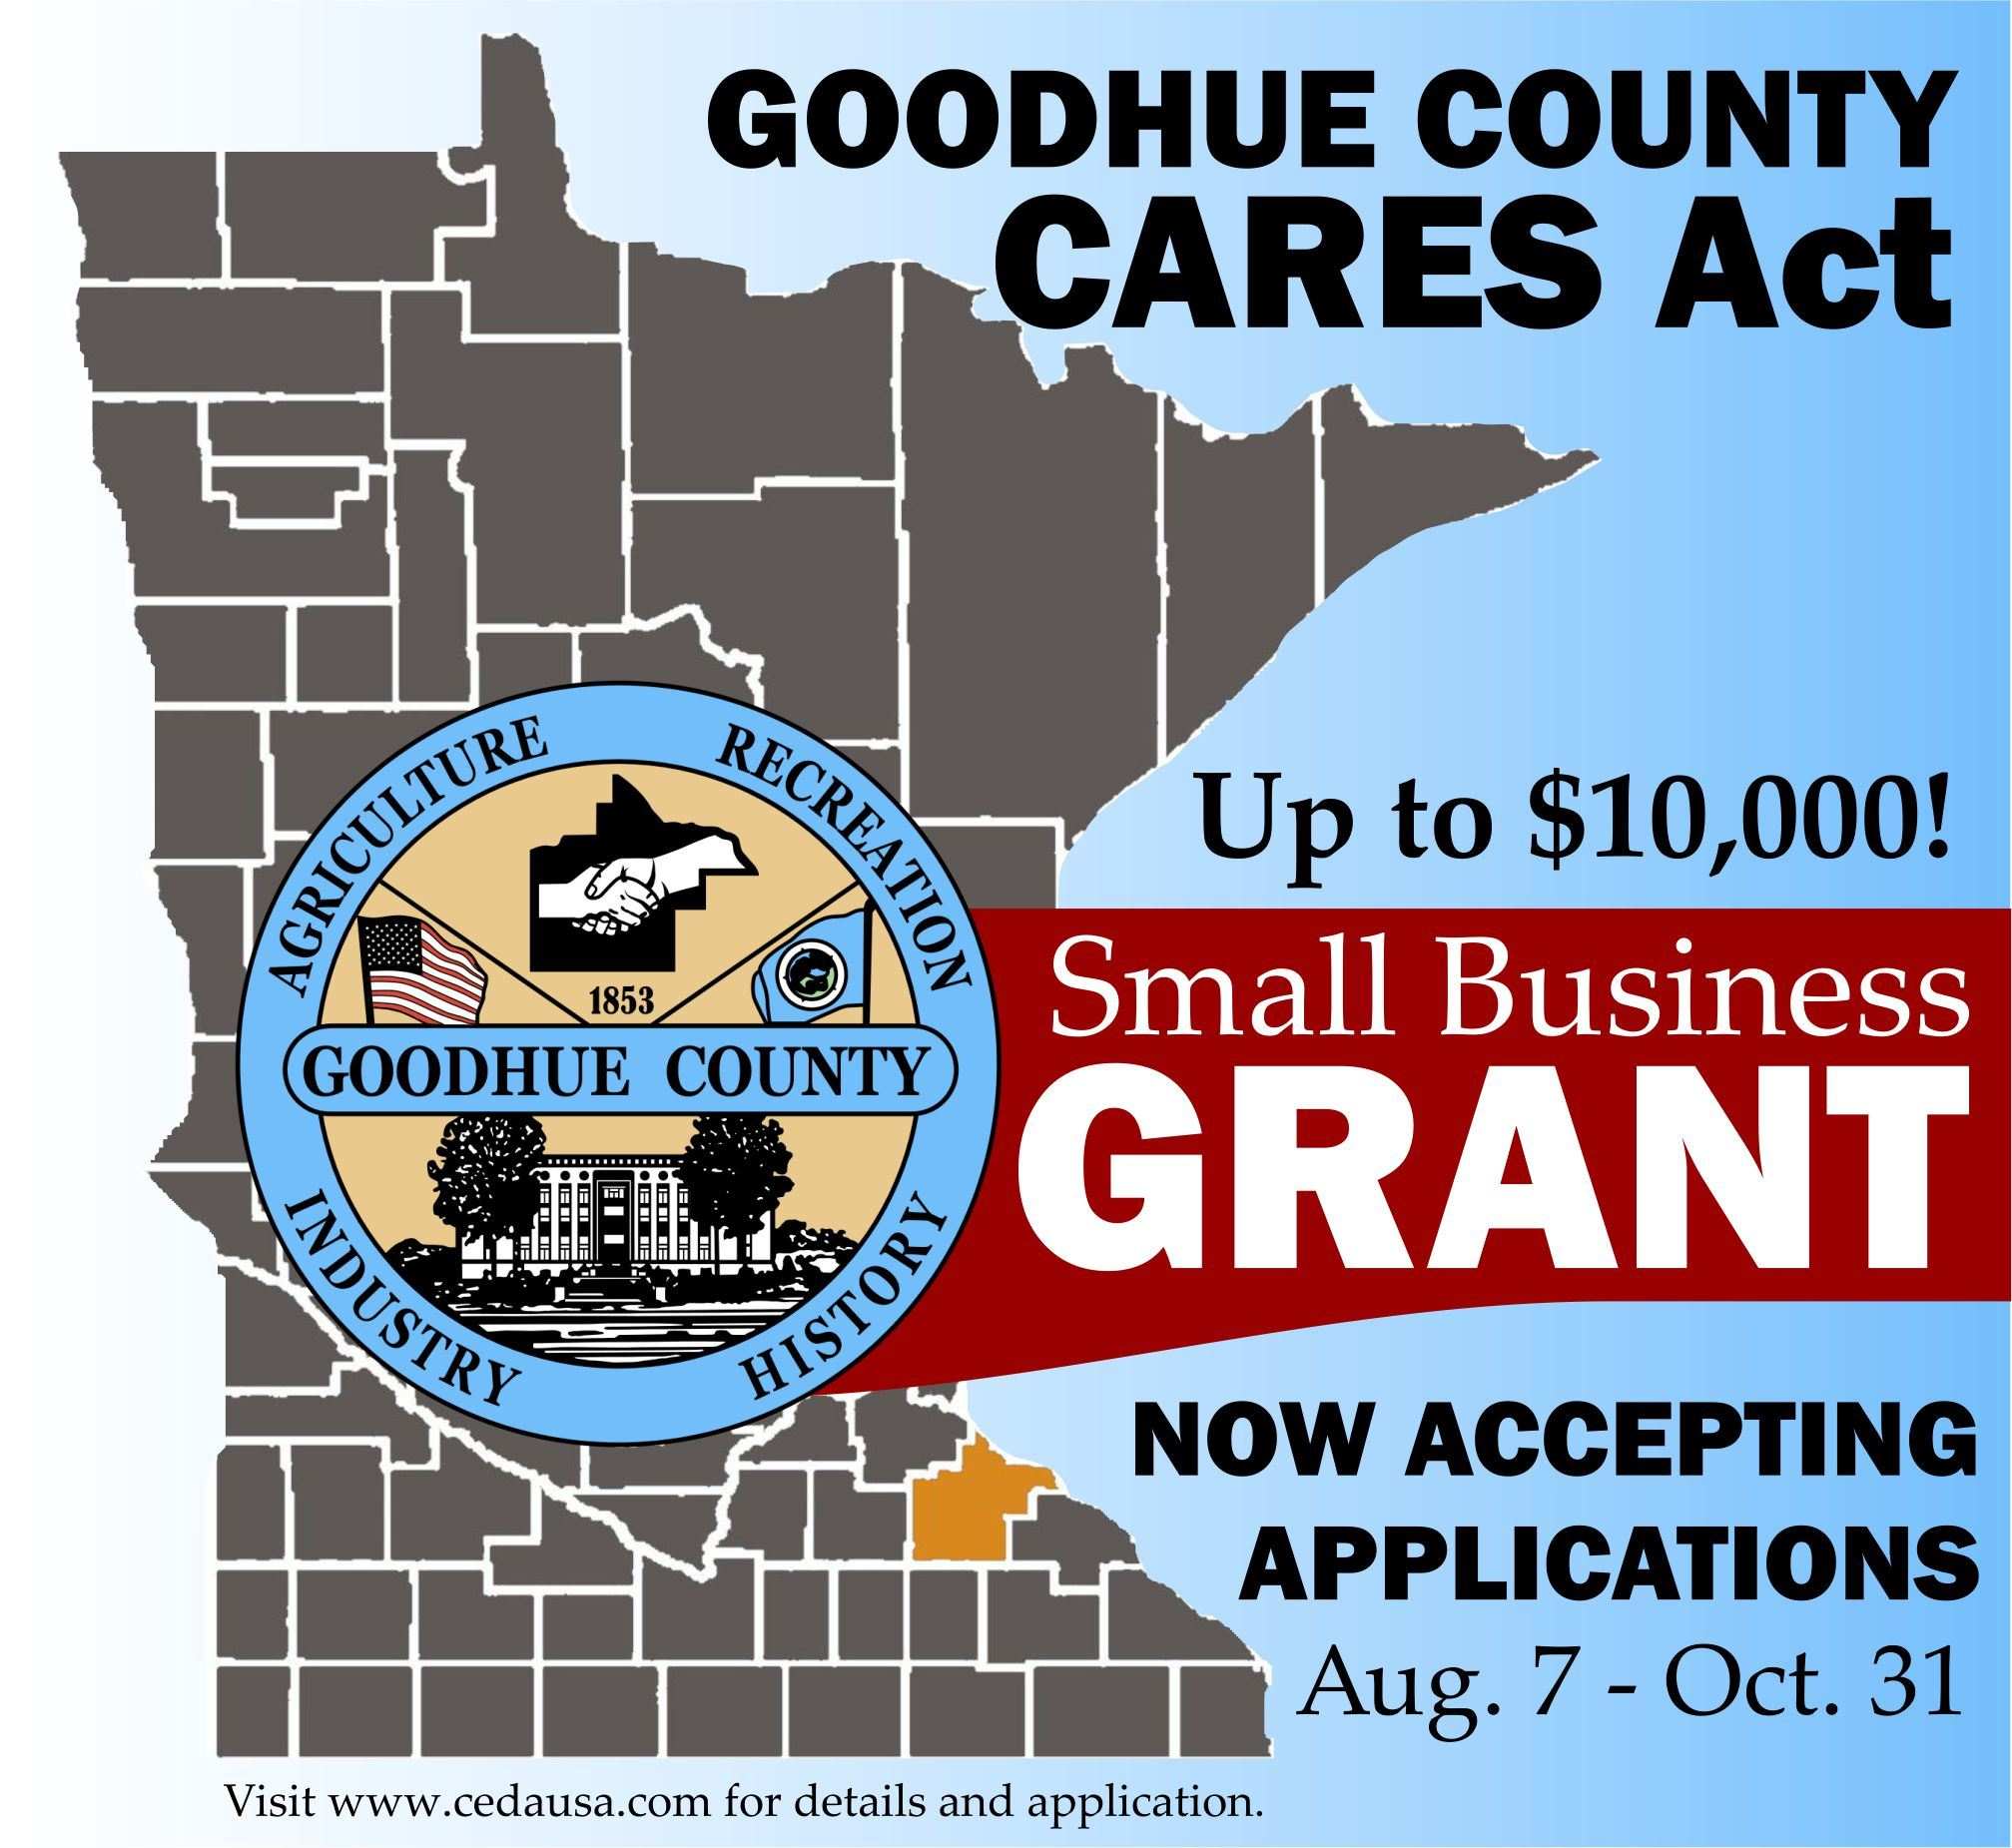 Goodhue County CARES Grant marketing tool